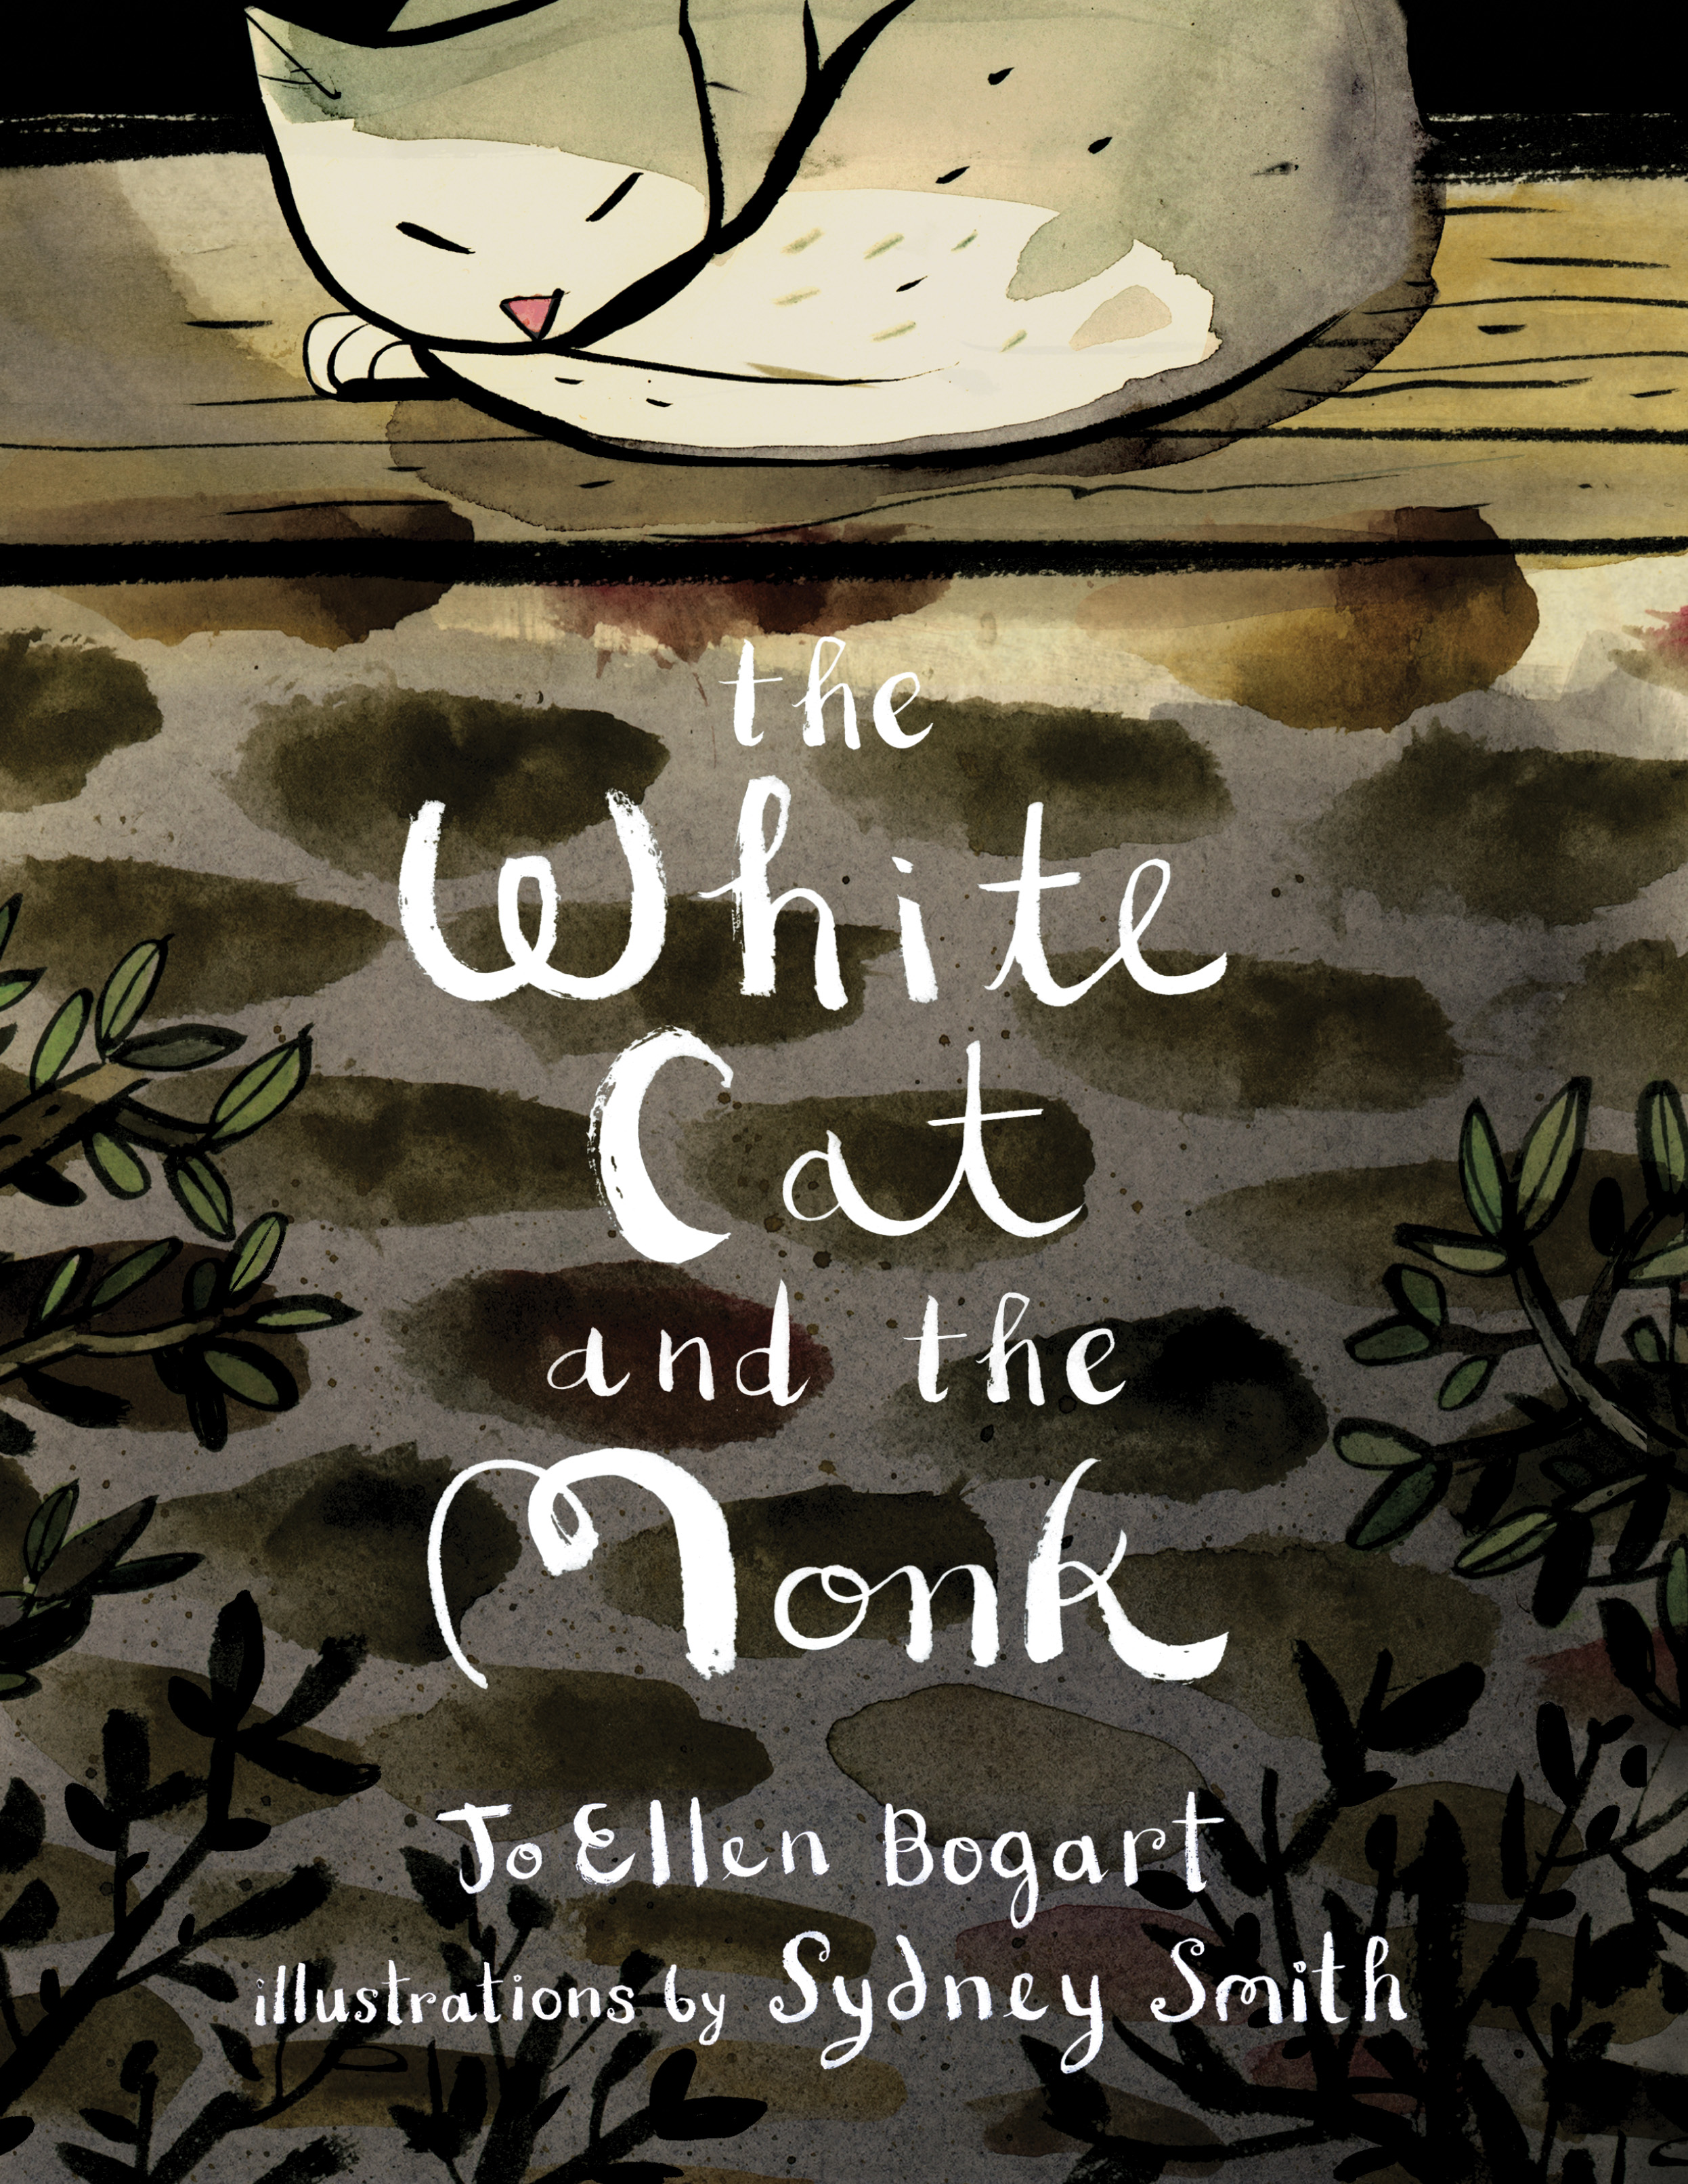 The White Cat and the Monk   by Jo Ellen Bogart, illustrated by Sydney Smith cover image.